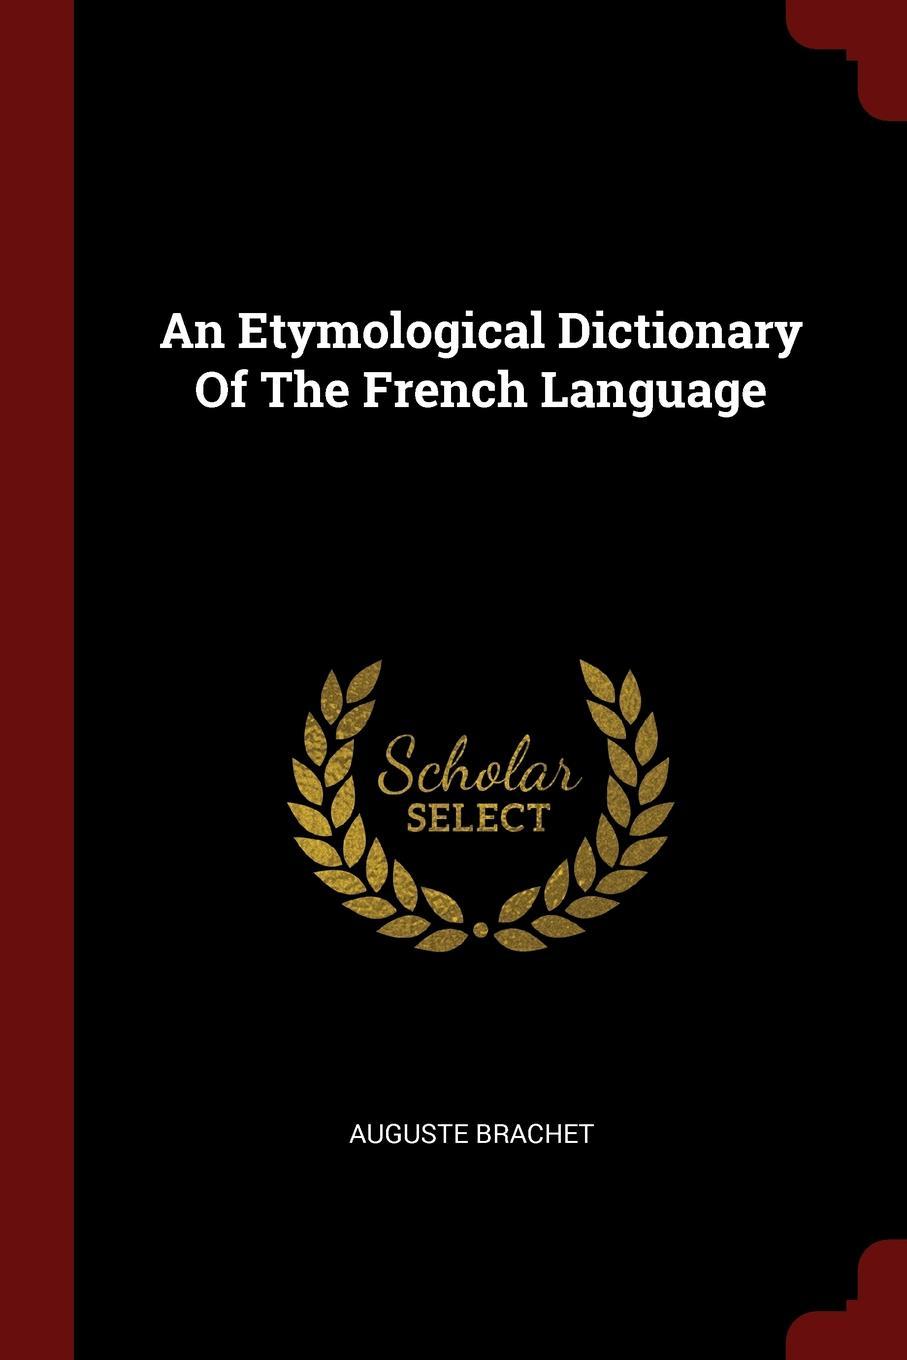 An Etymological Dictionary Of The French Language